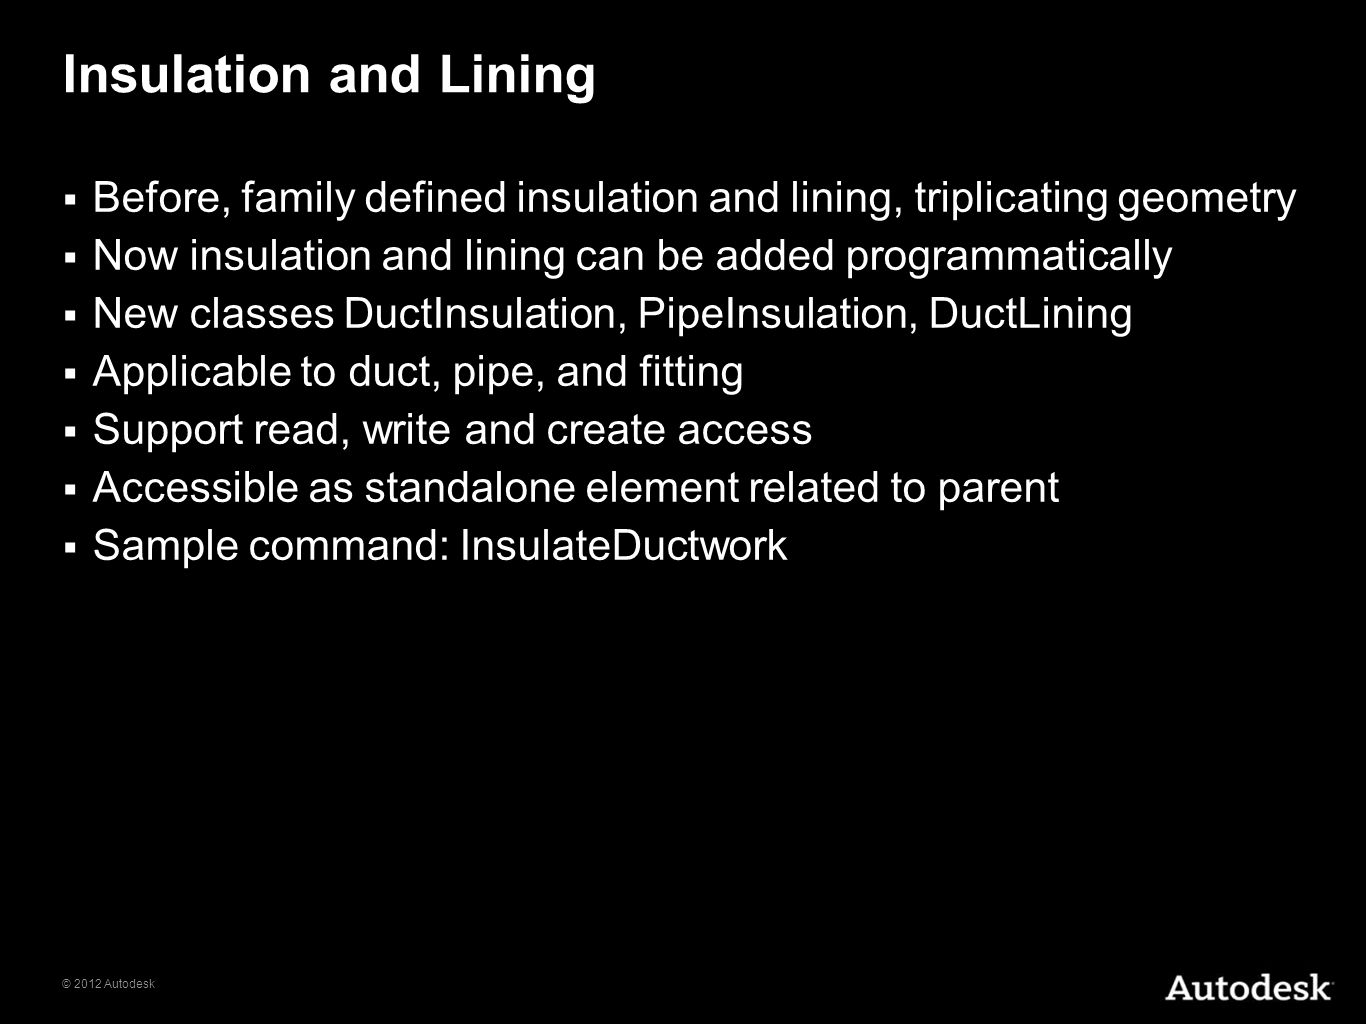 Insulation and Lining Before, family defined insulation and lining, triplicating geometry. Now insulation and lining can be added programmatically.